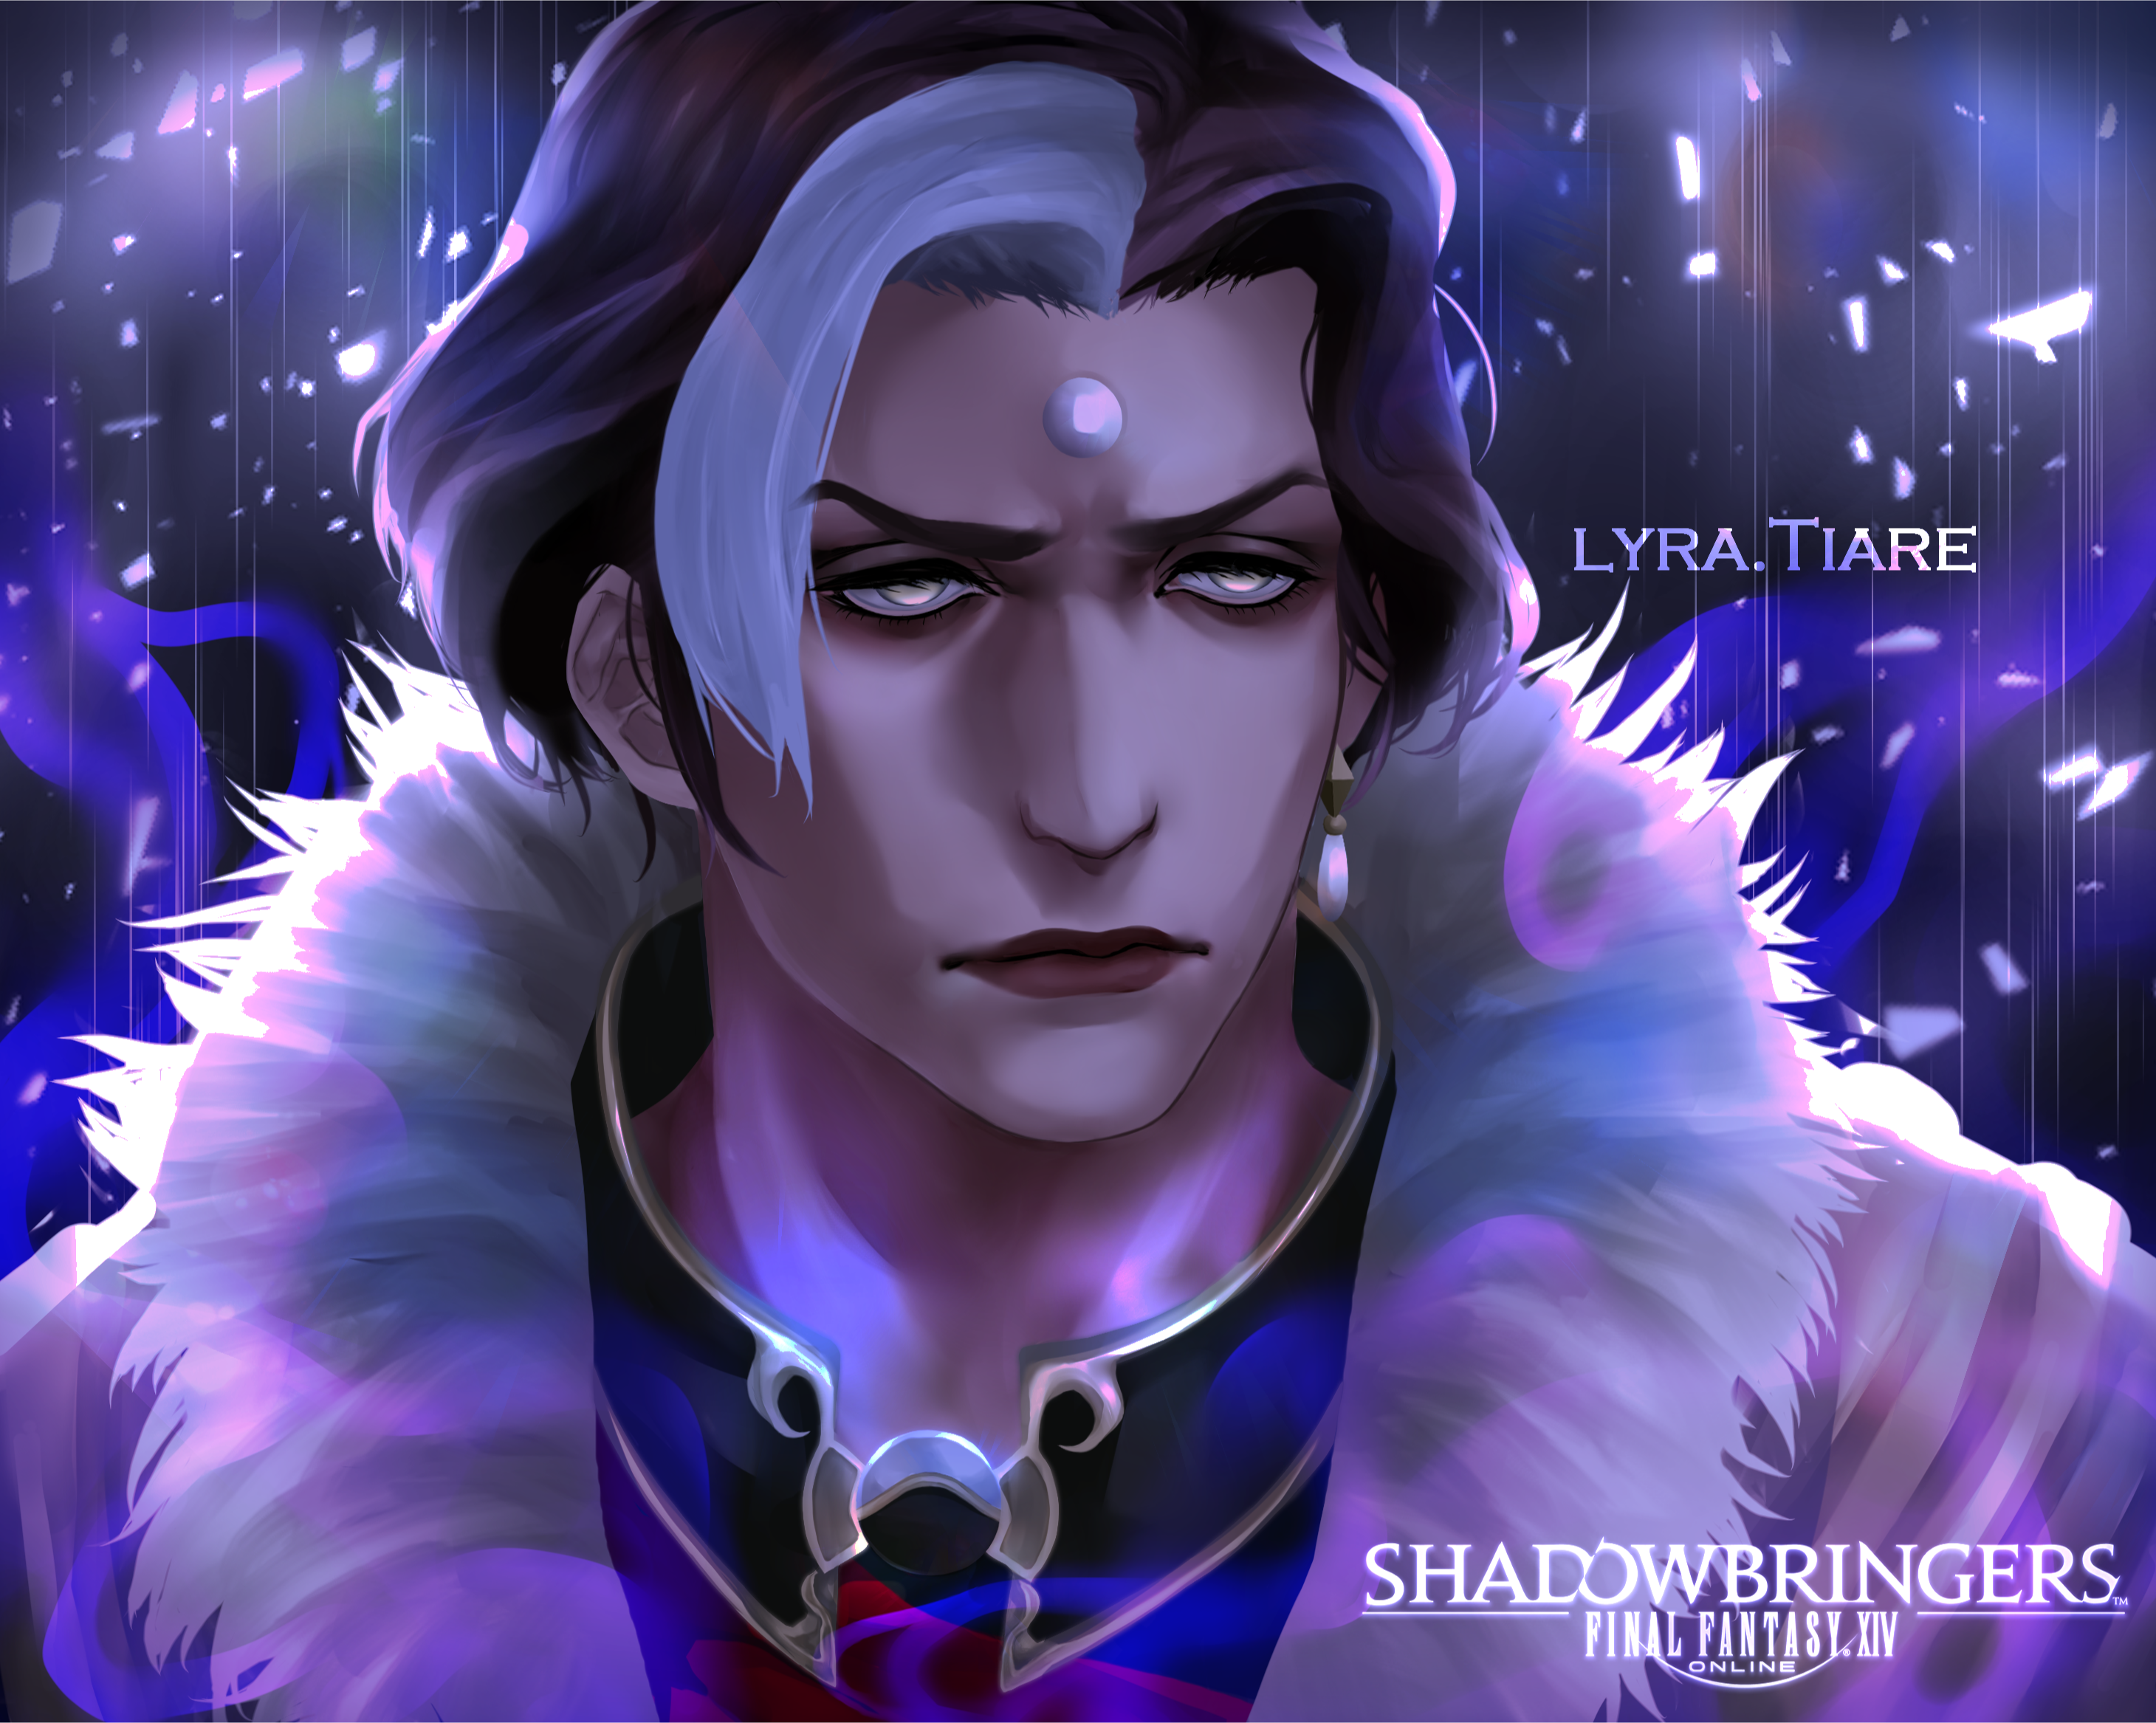 Emet Selch By Lyratiare On Deviantart I hope we see more of him, i'm so sad he's dead now , shb bring many wonders to us and. emet selch by lyratiare on deviantart